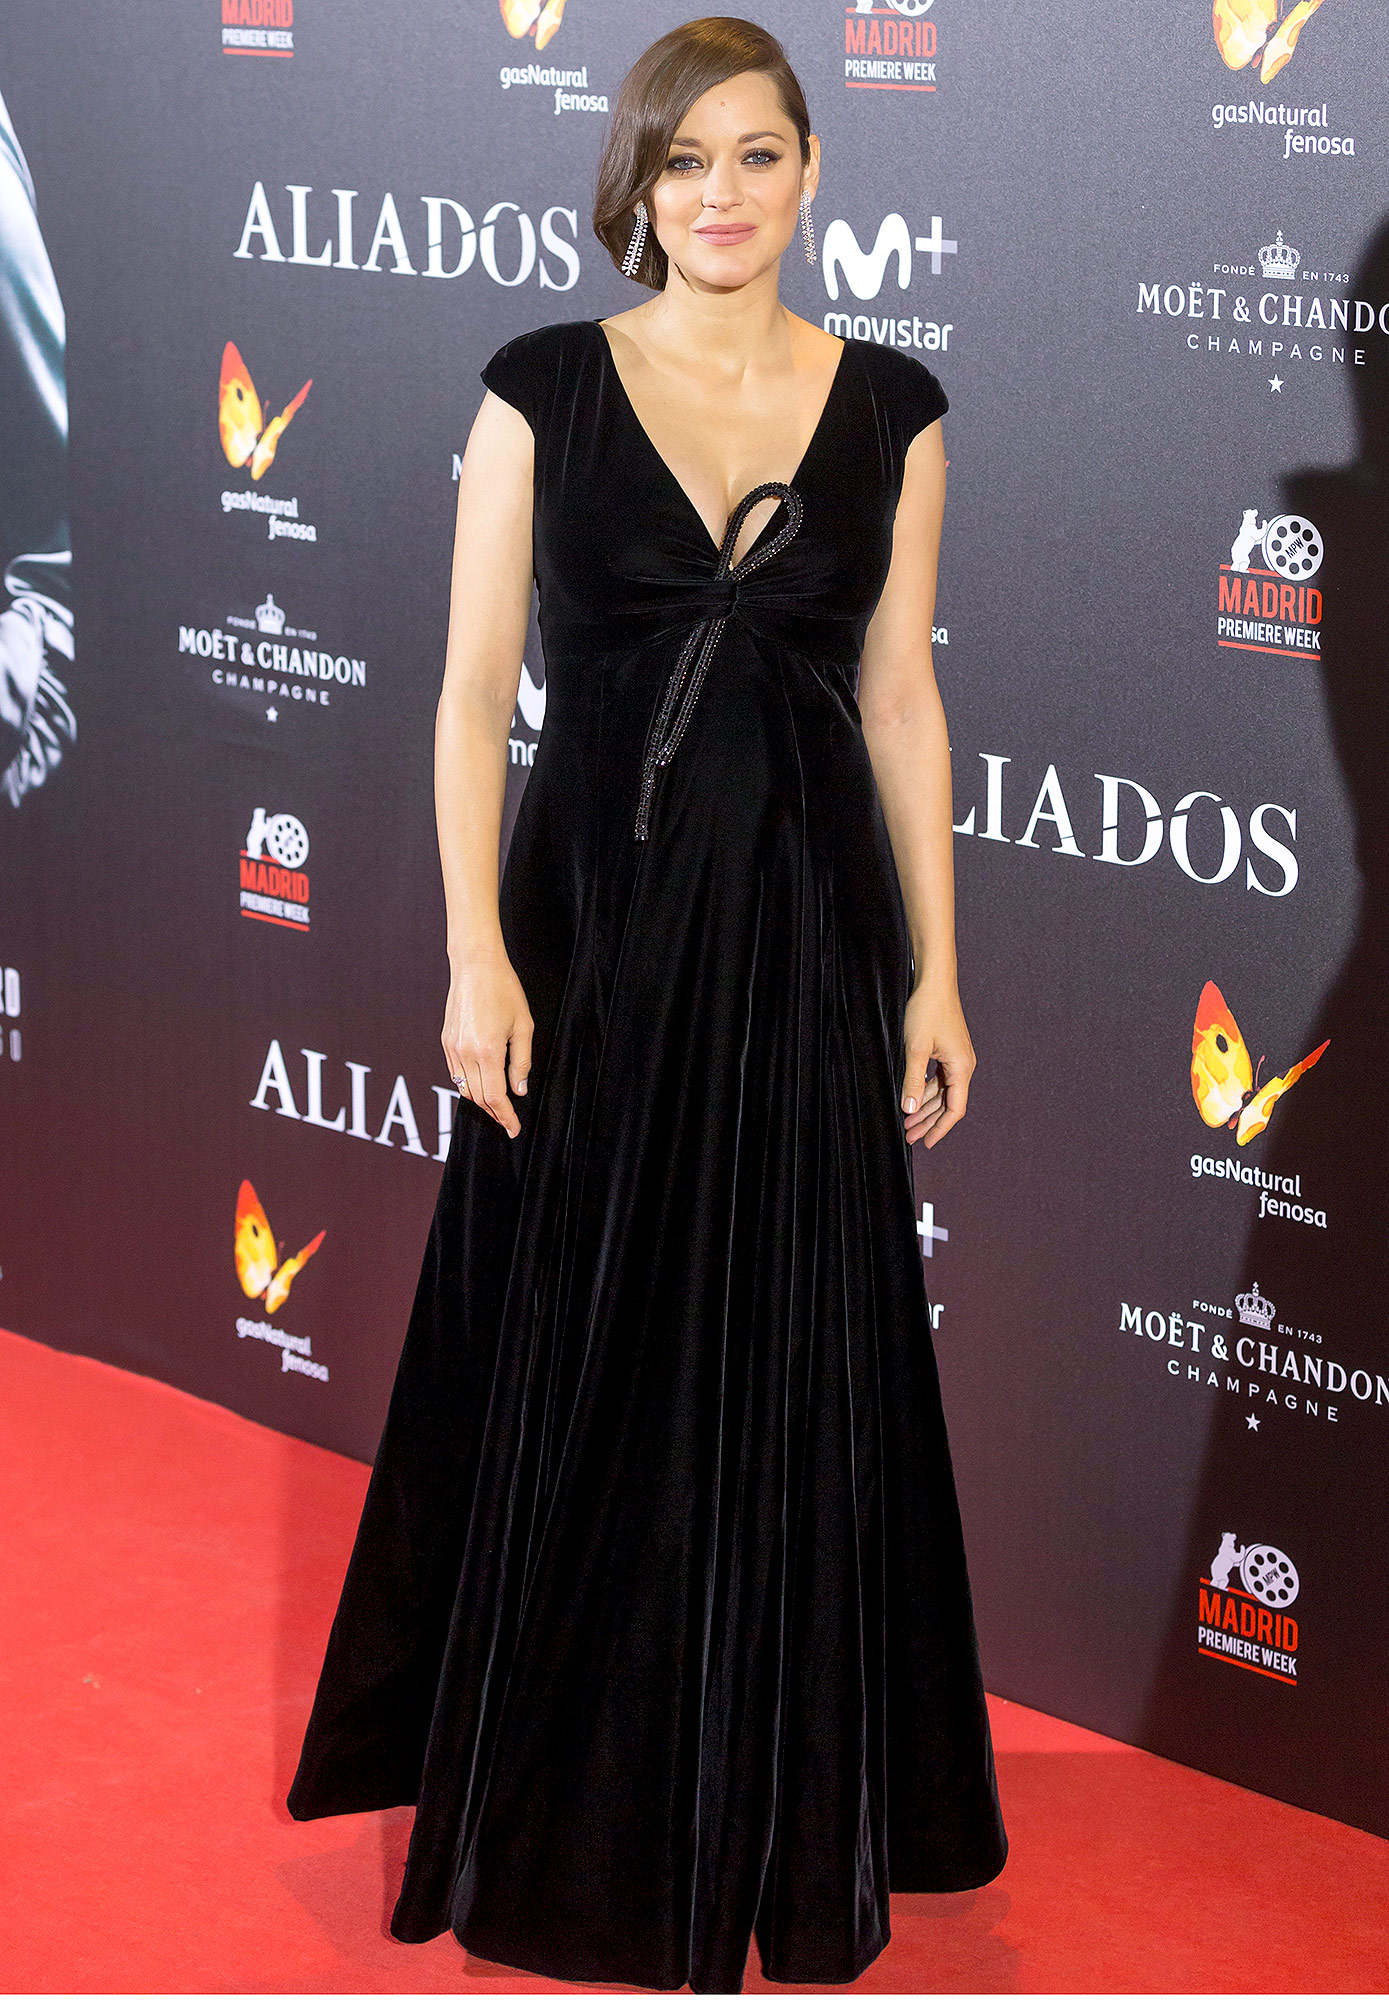 Marion Cotillard and  Brad Pitt attend the Madrid premiere of the Paramount Pictures title 'Allied' (Aliados) at Callao City Lights